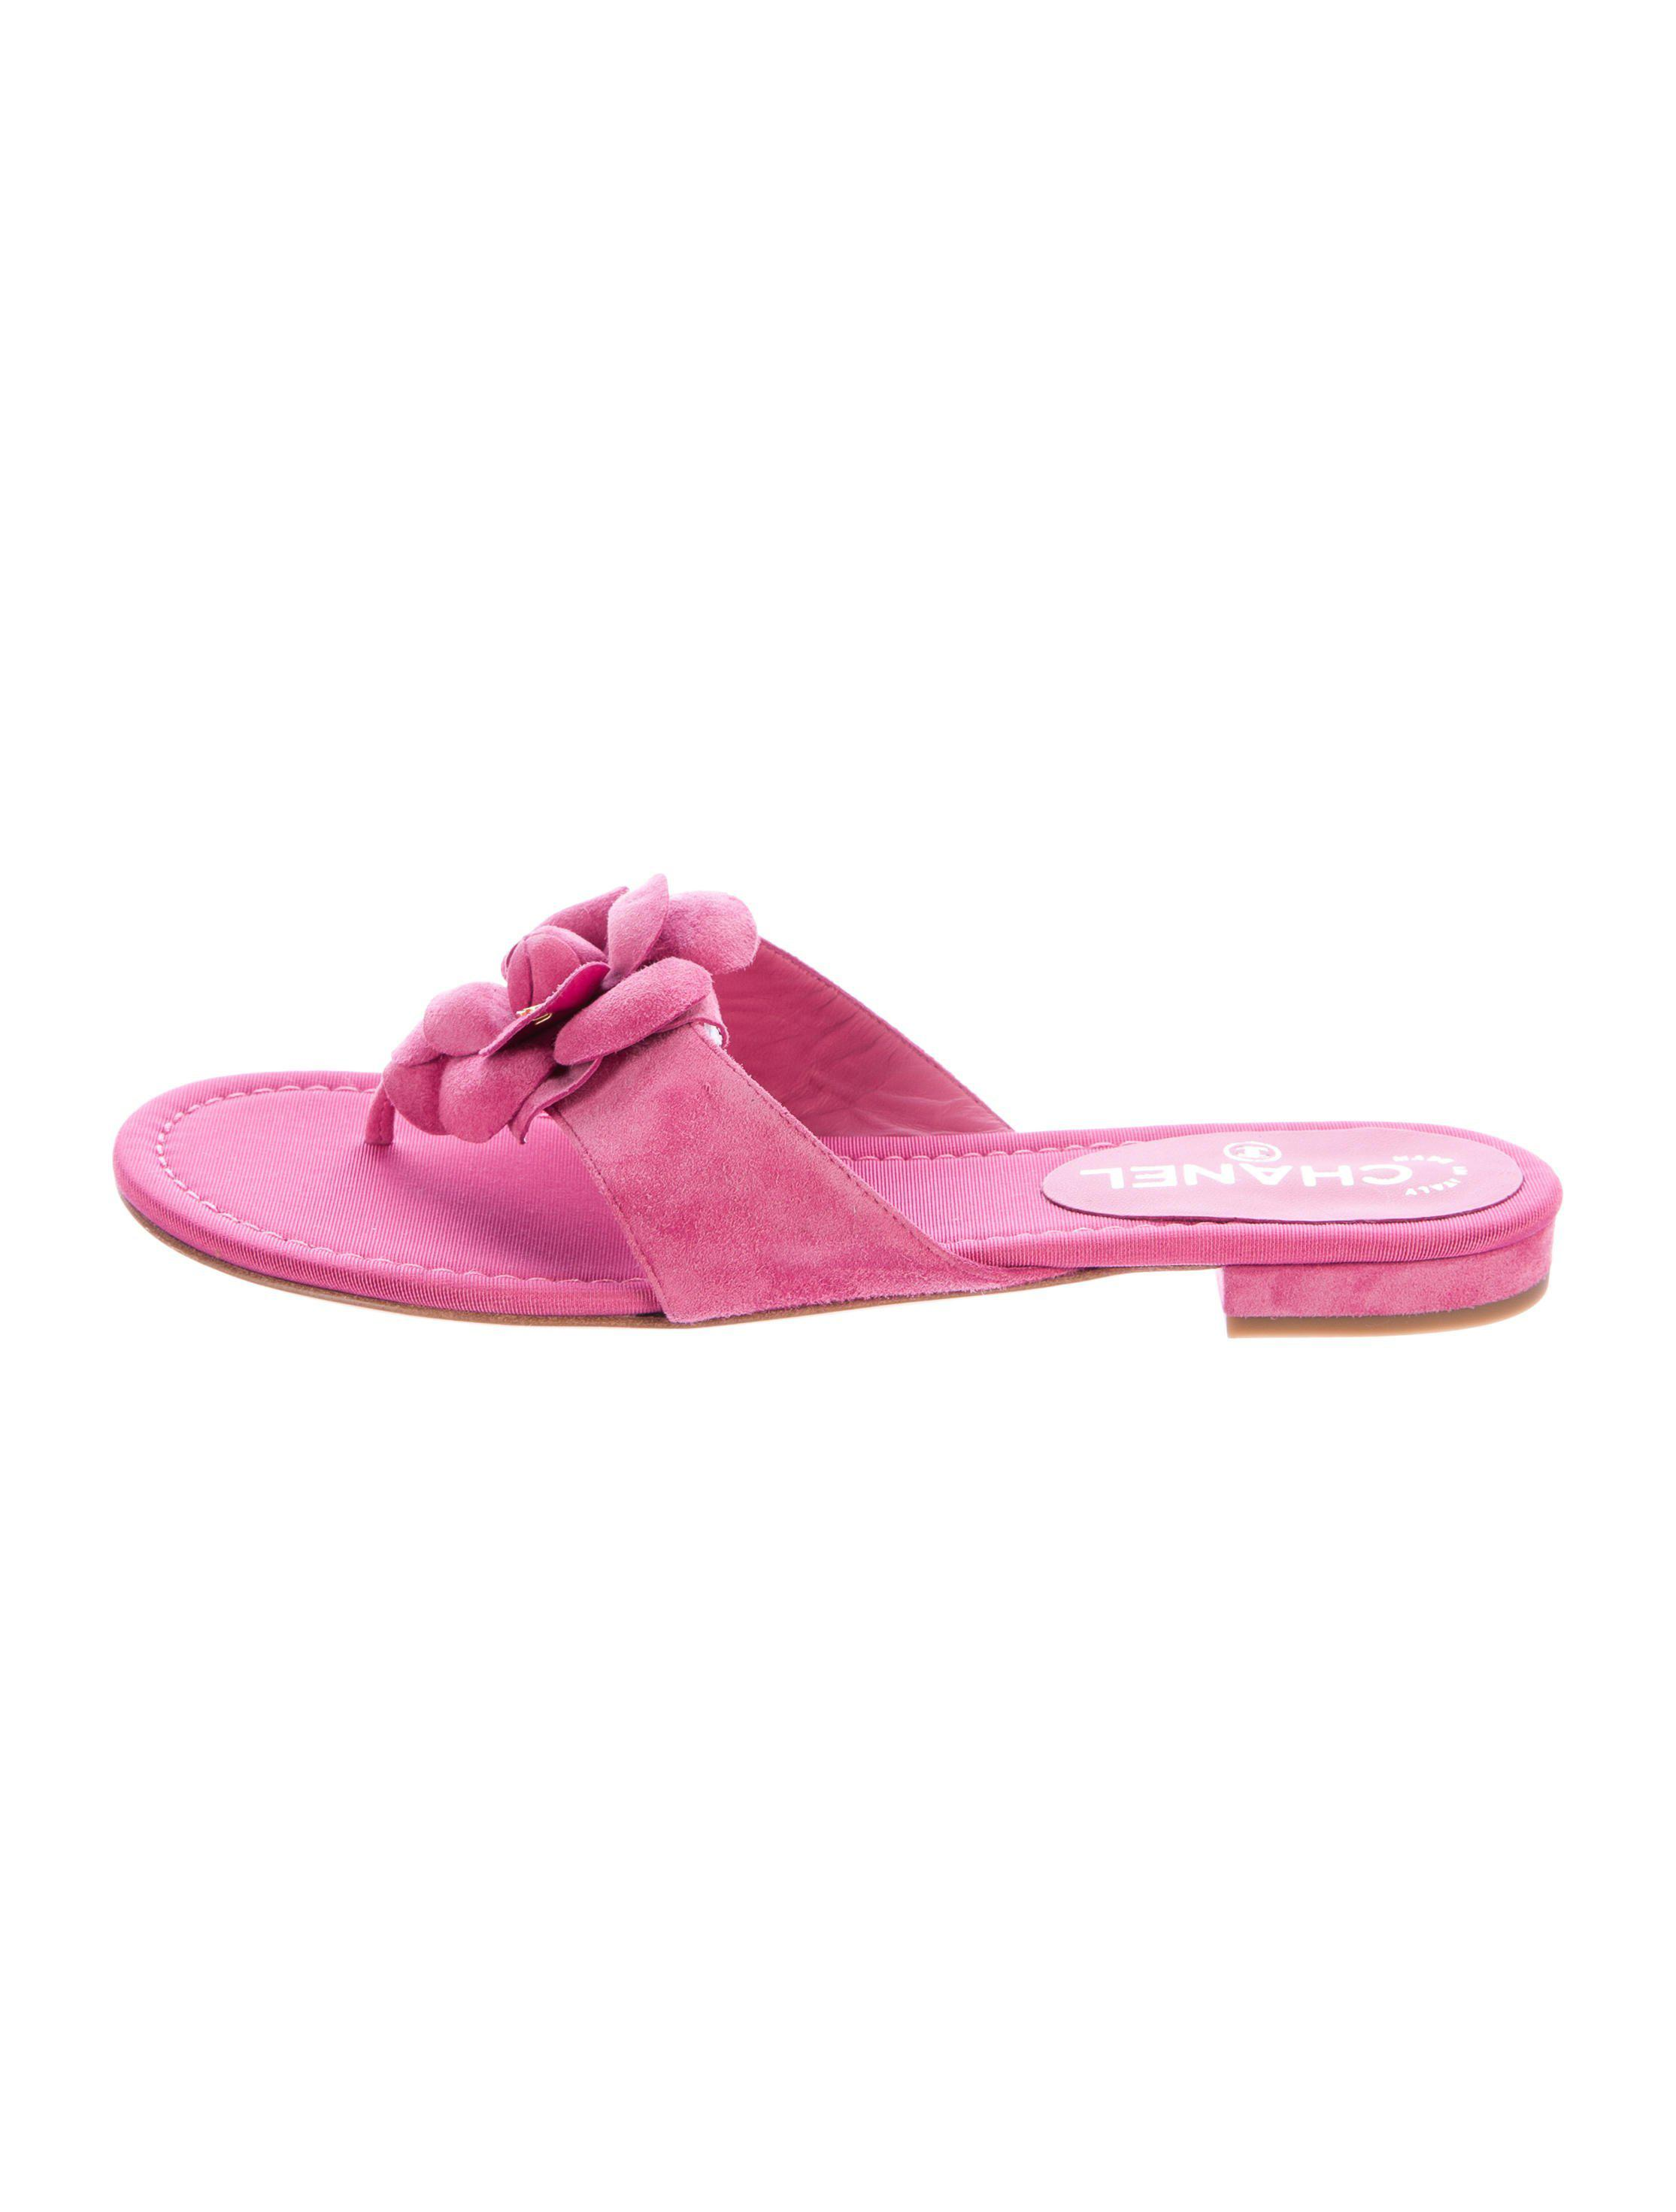 46167972756116 Lyst - Chanel Suede Camelia Sandals Fuchsia in Pink